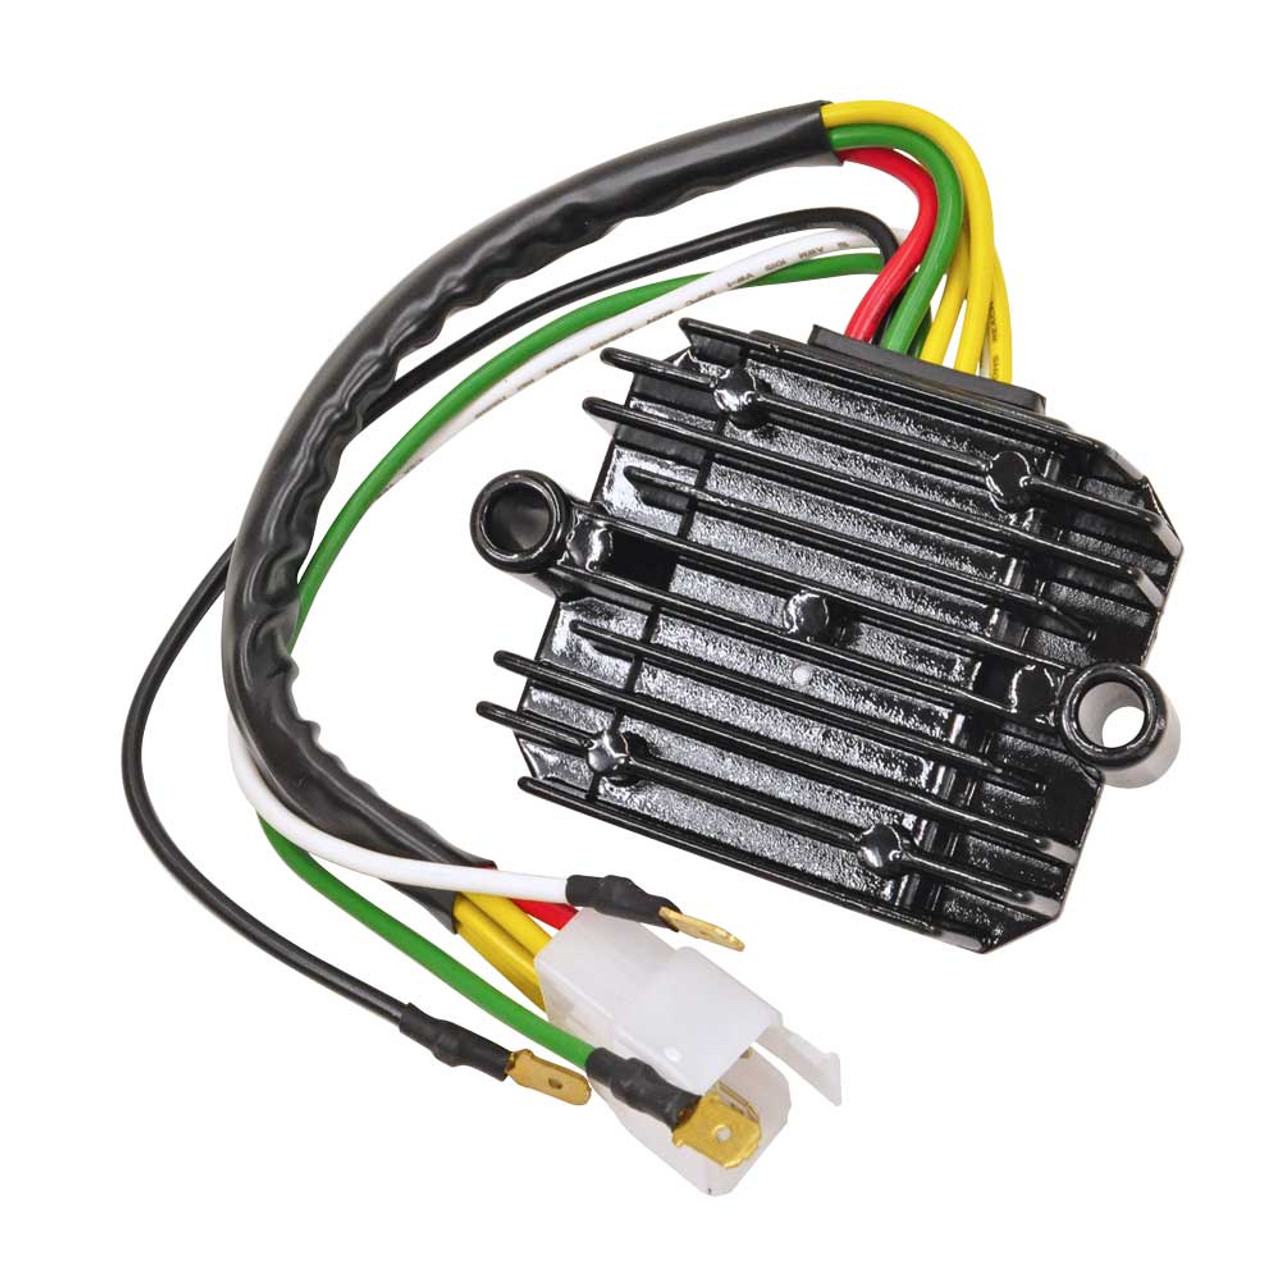 small resolution of rick s motorsport electrics lithium ion battery compatible regulator rectifier 14 100 main image